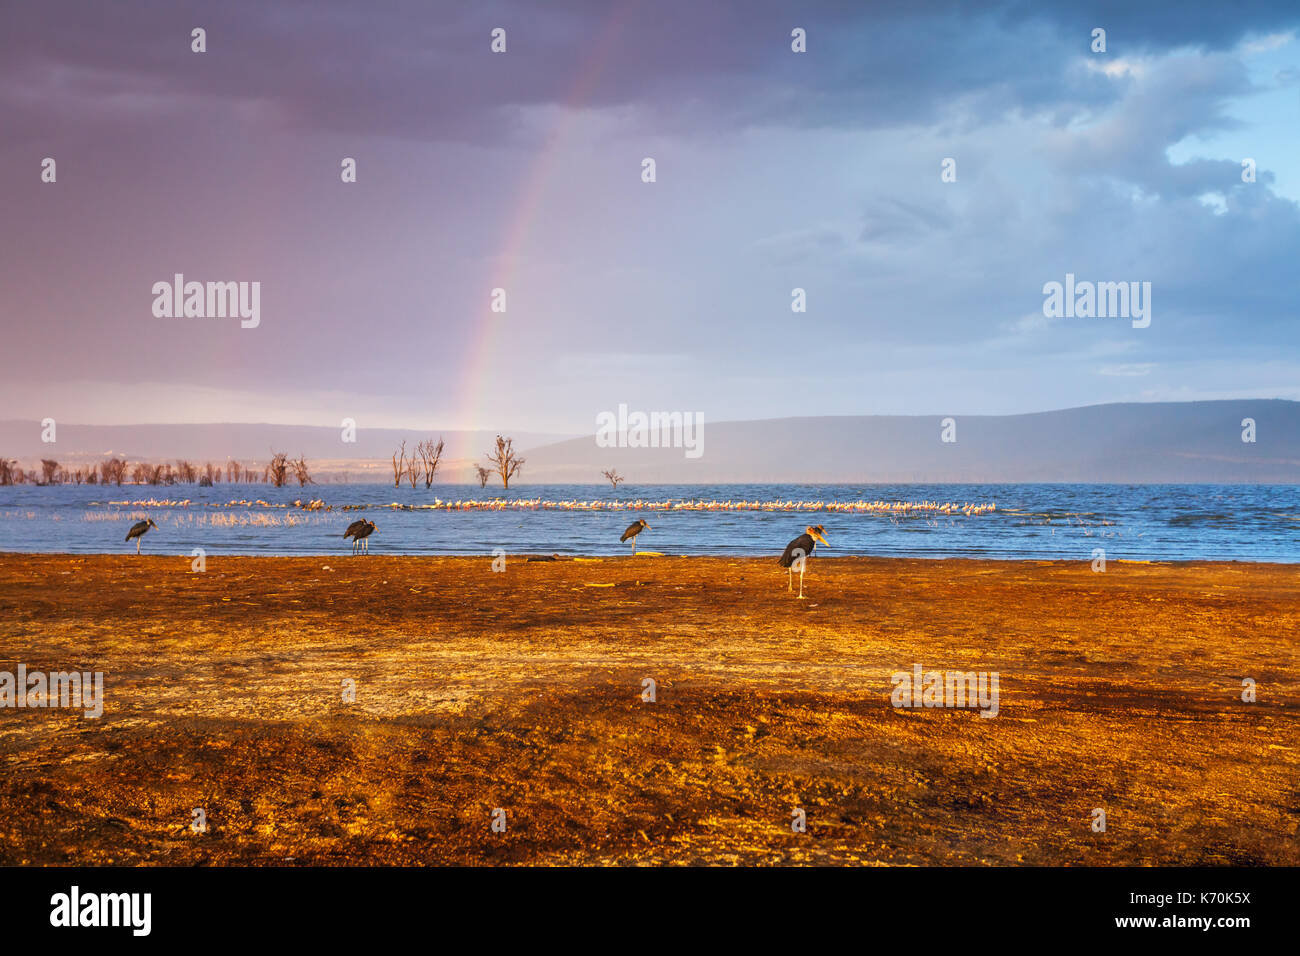 Double rainbow on the cloudy sky over Nakuru lake in Kenya, Africa - Stock Image